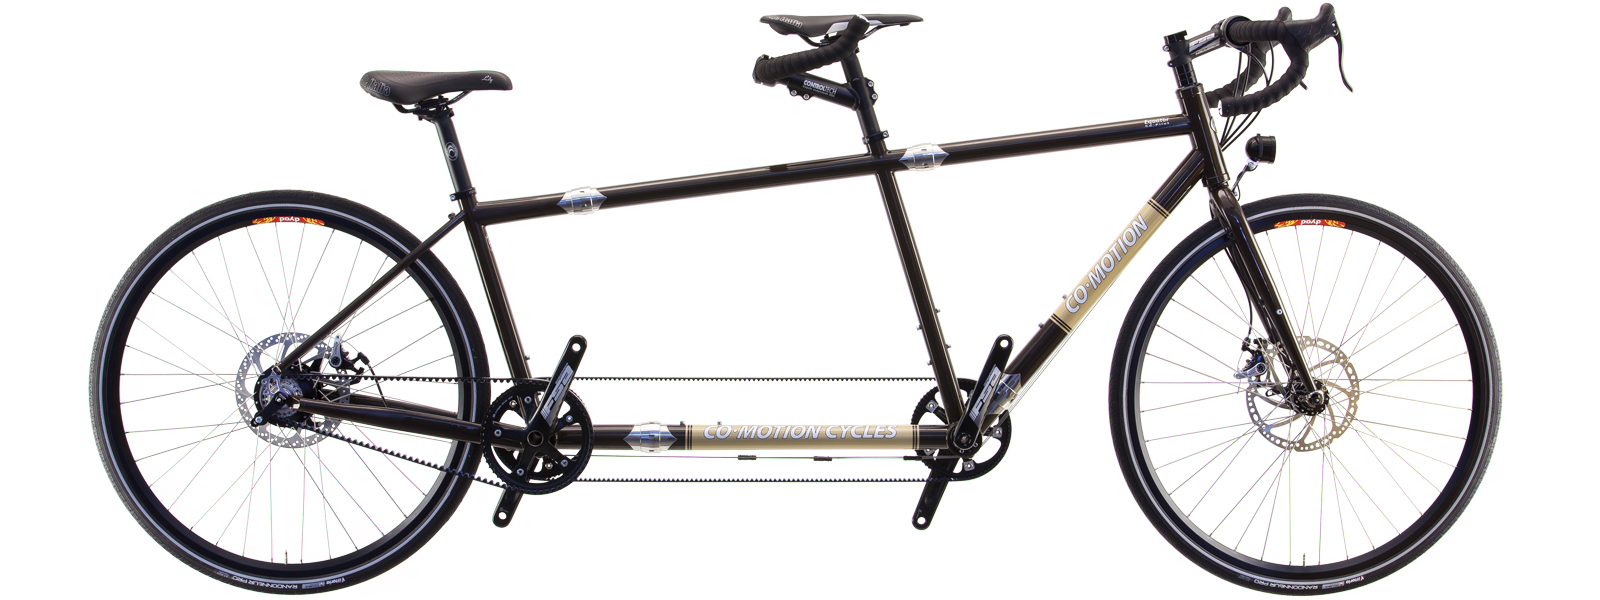 PRECISION TANDEMS - TANDEM DISPLAY & CATALOG